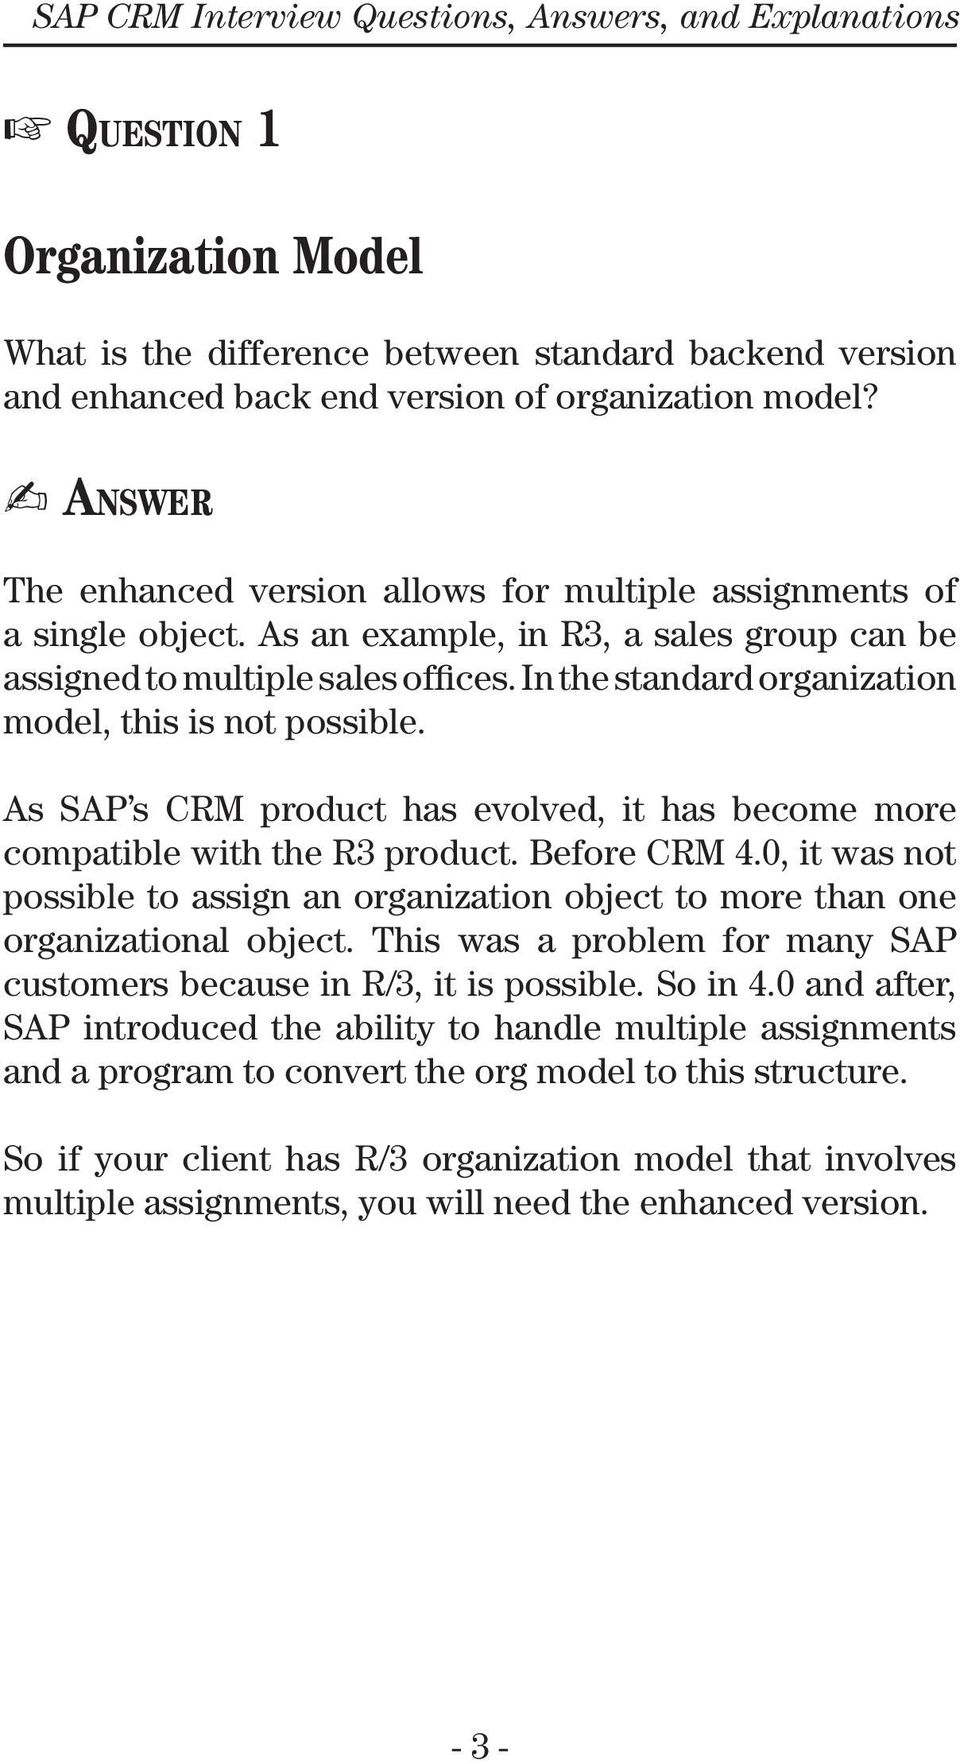 SAP CRM Interview Questions, Answers, and Explanations - PDF